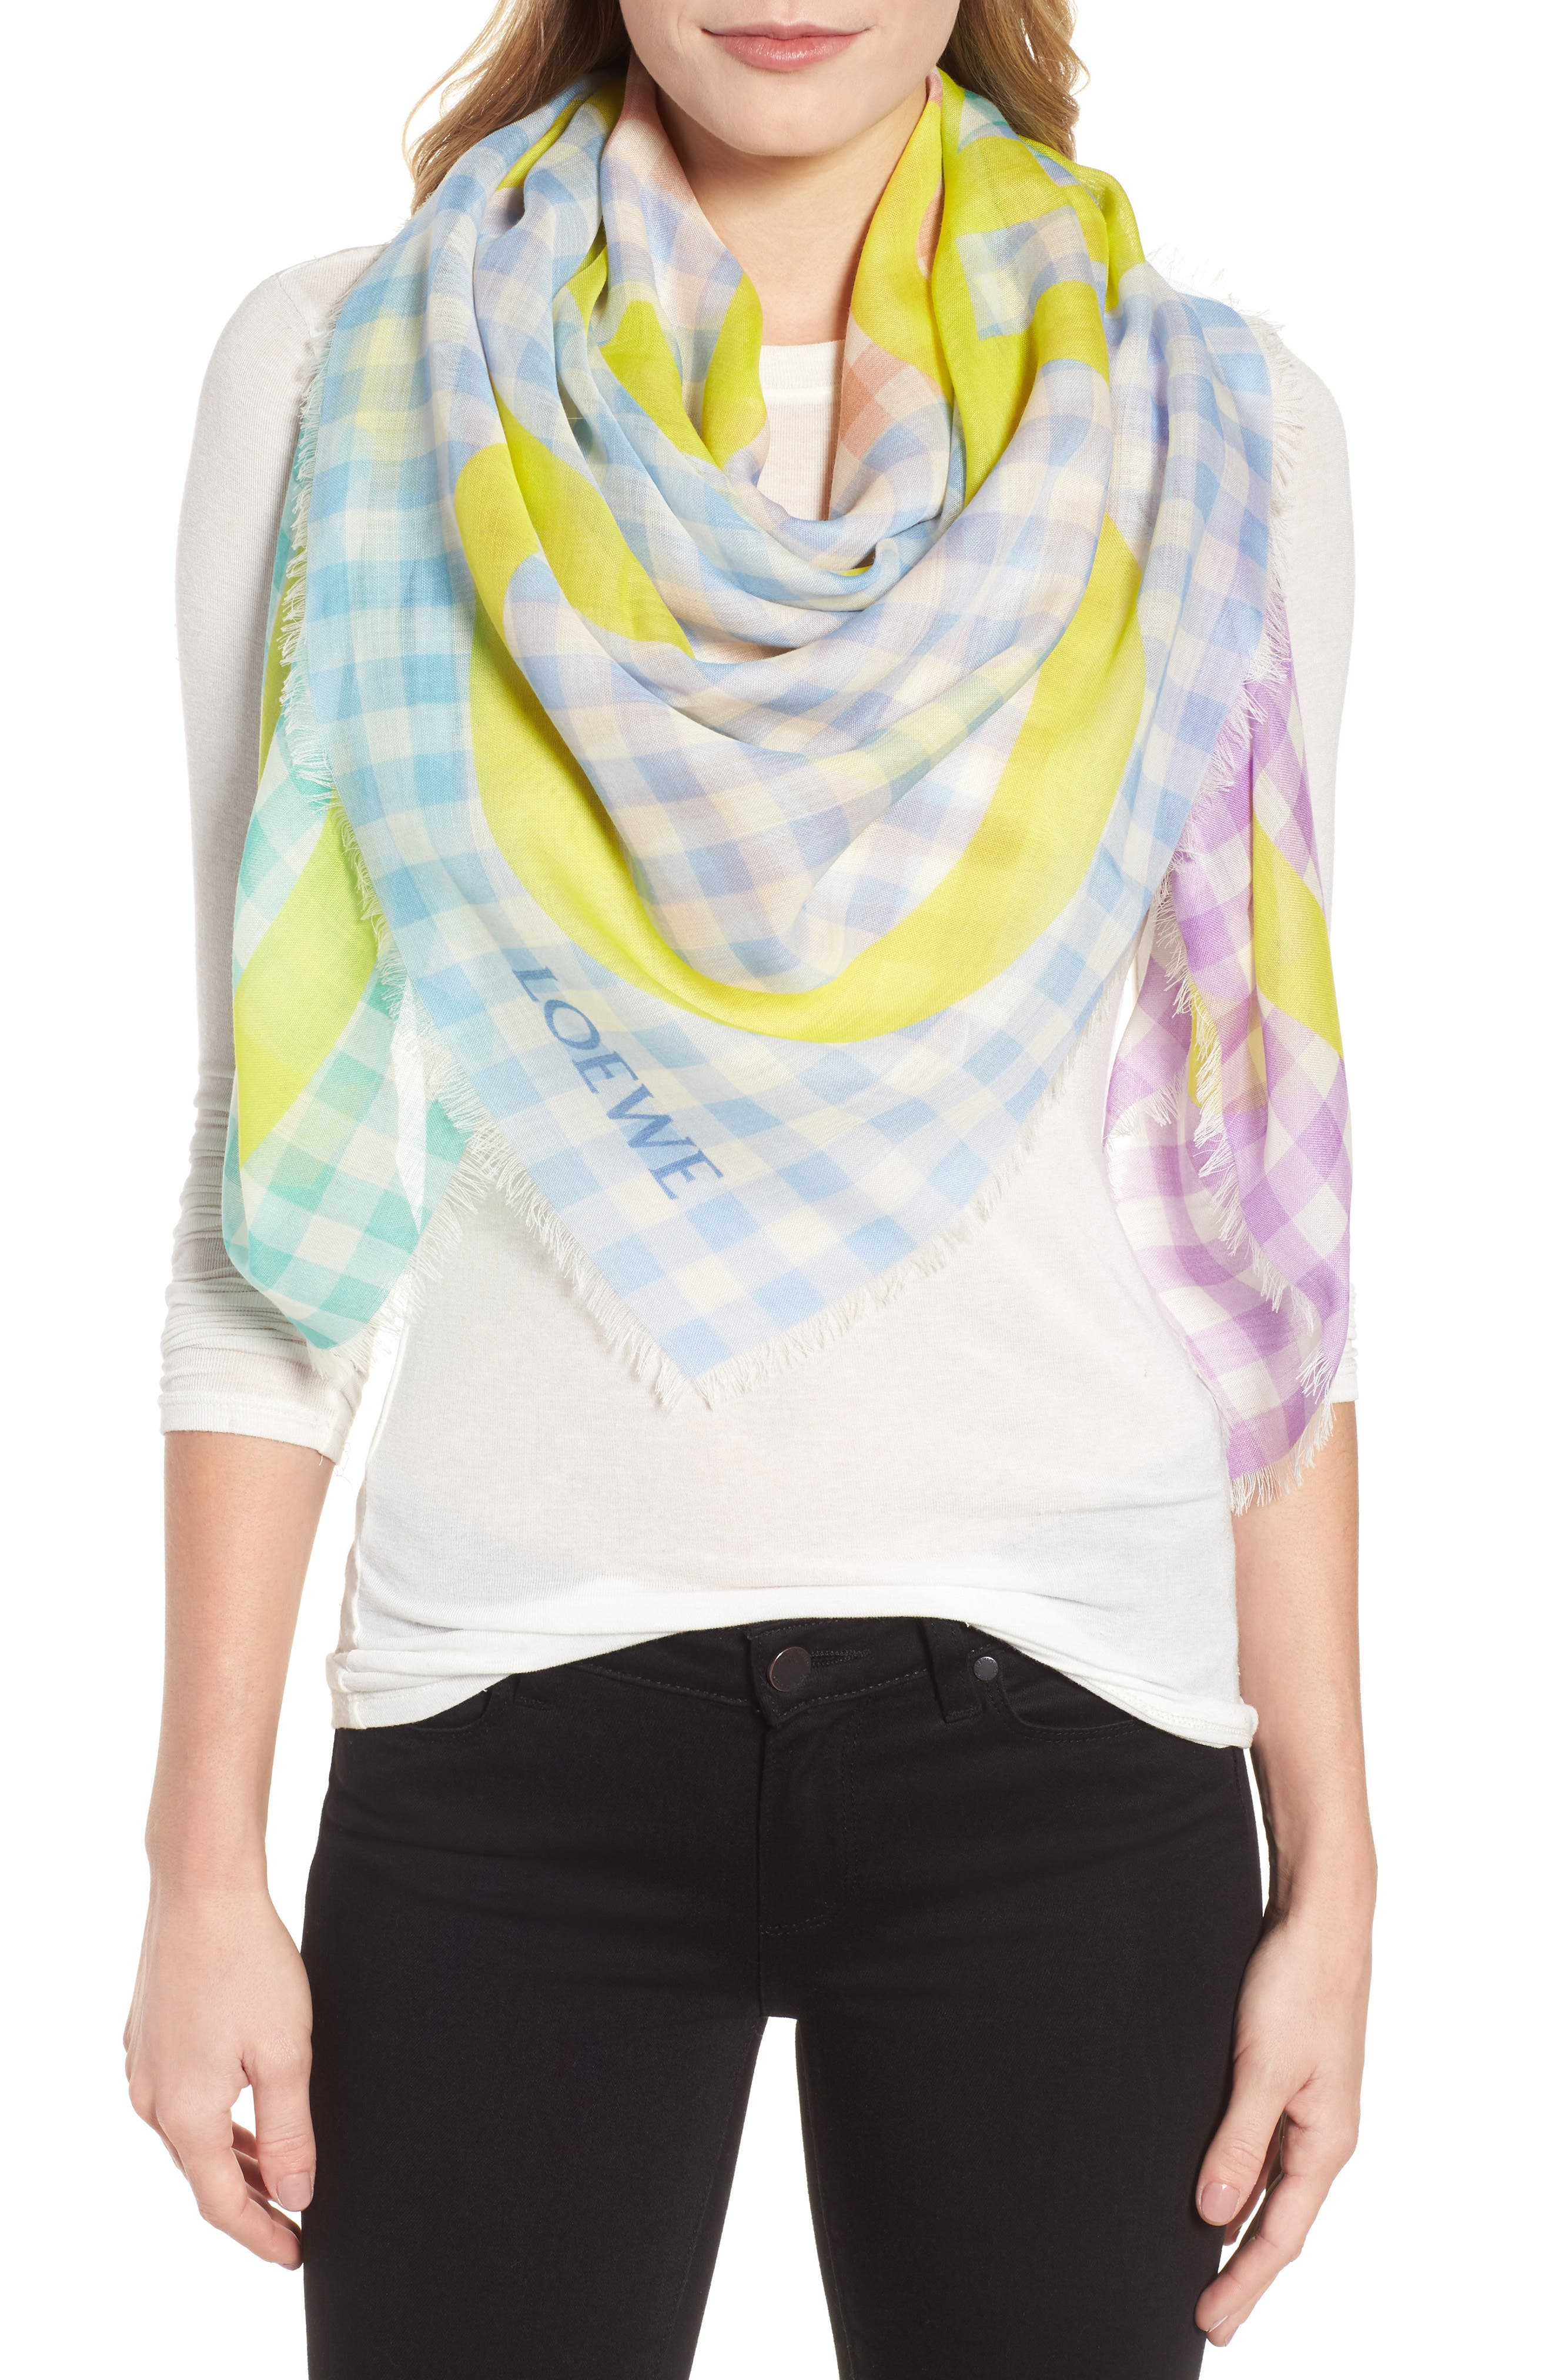 Gingham Anagram Wool Scarf,                             Main thumbnail 1, color,                             MULTICOLOR